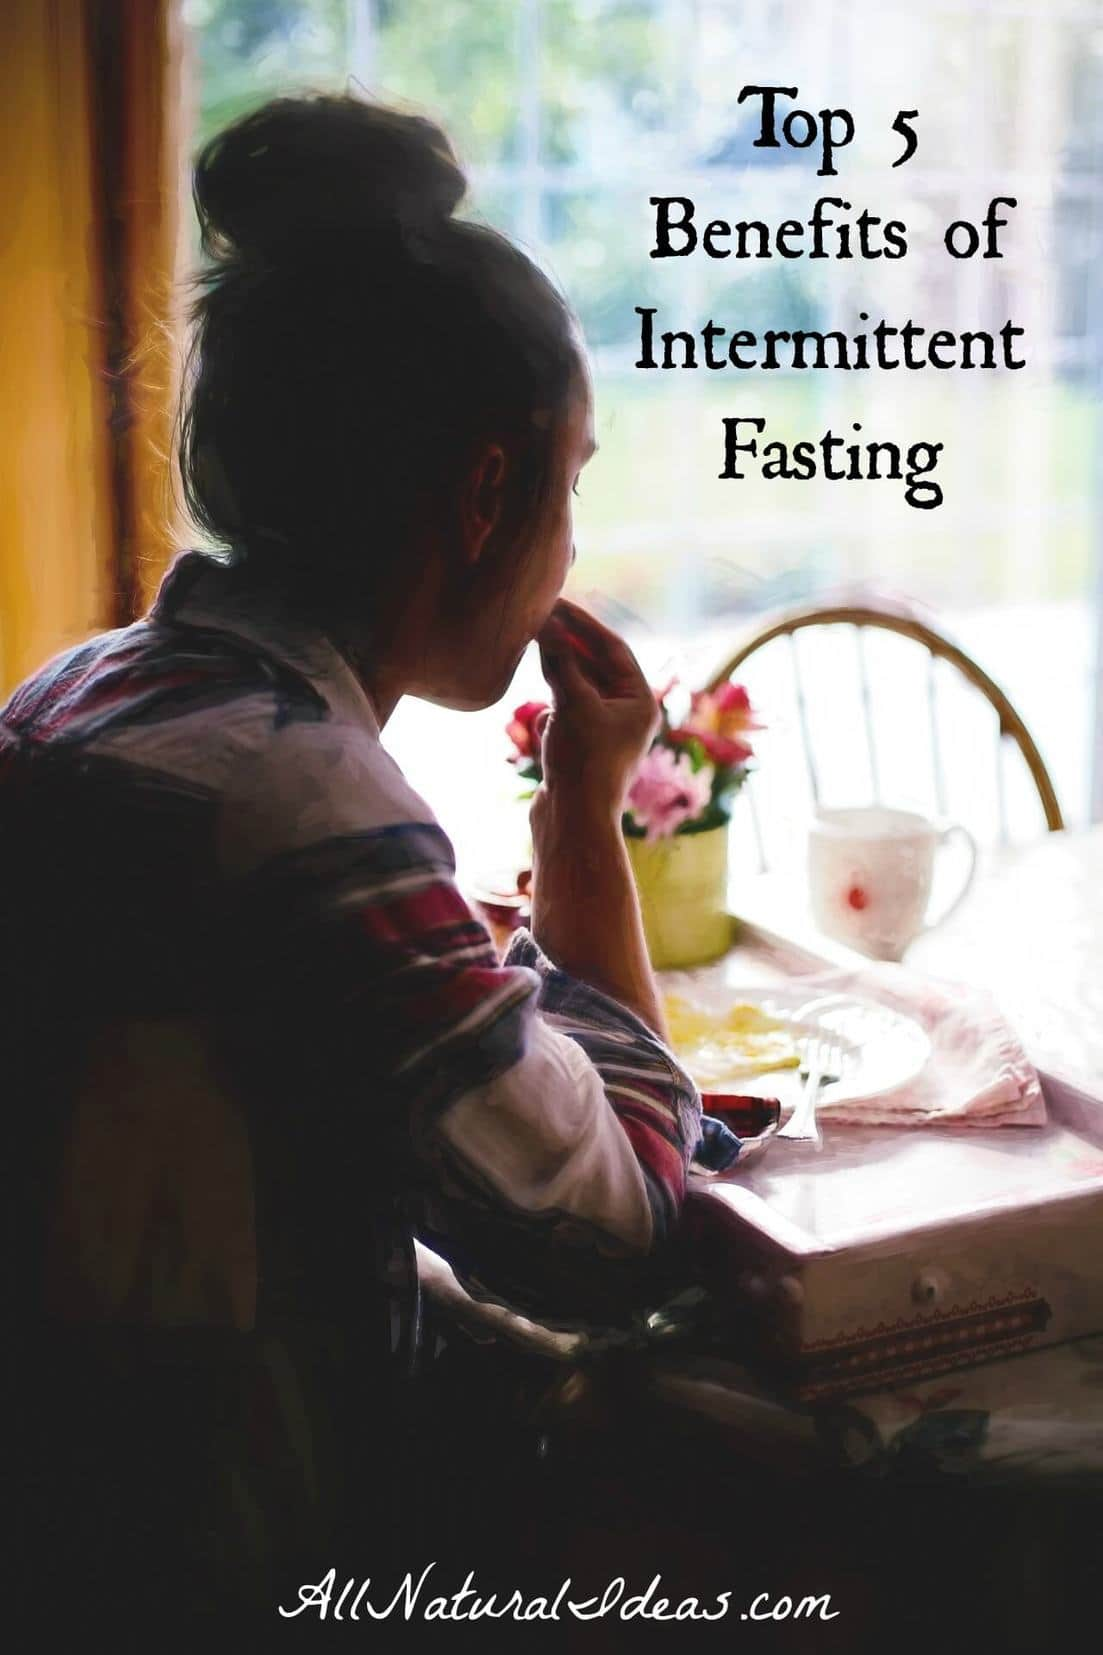 Want to lose weight and boost the functionality of your cells? Check out the top intermittent fasting benefits to boost your health! | allnaturalideas.com